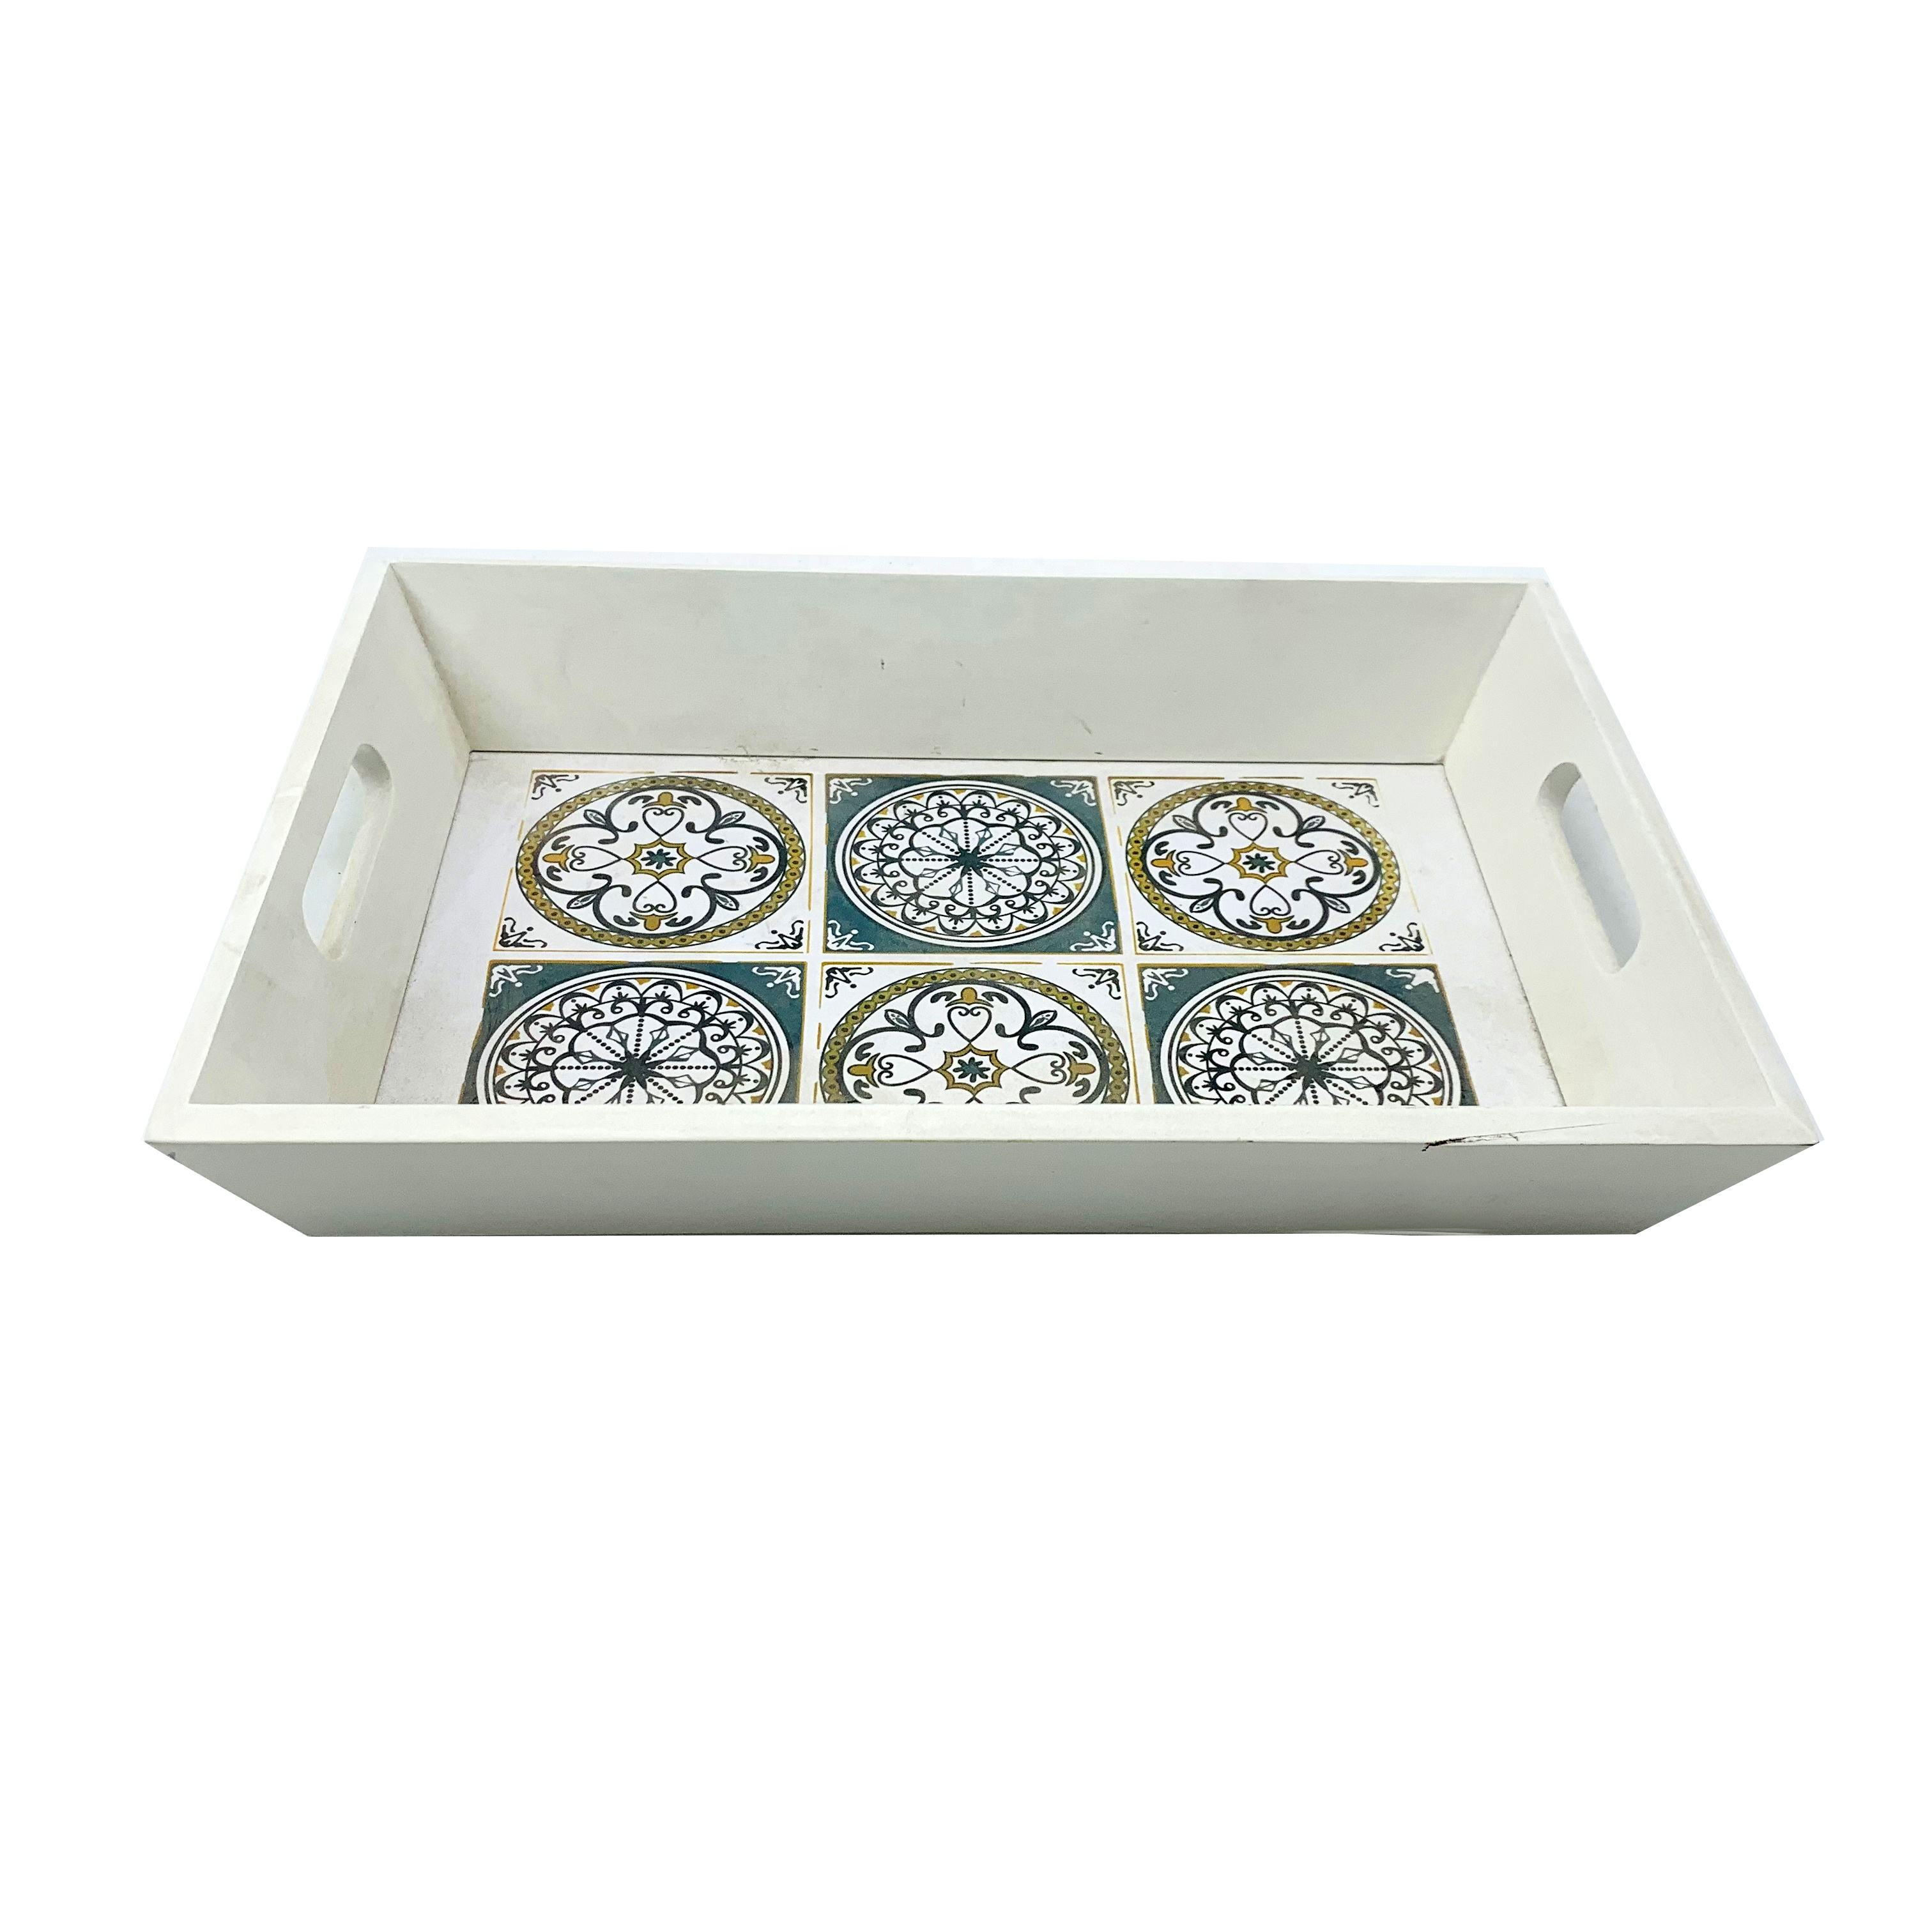 Custom printed decorative serving wood mdf tray for storage and decoration